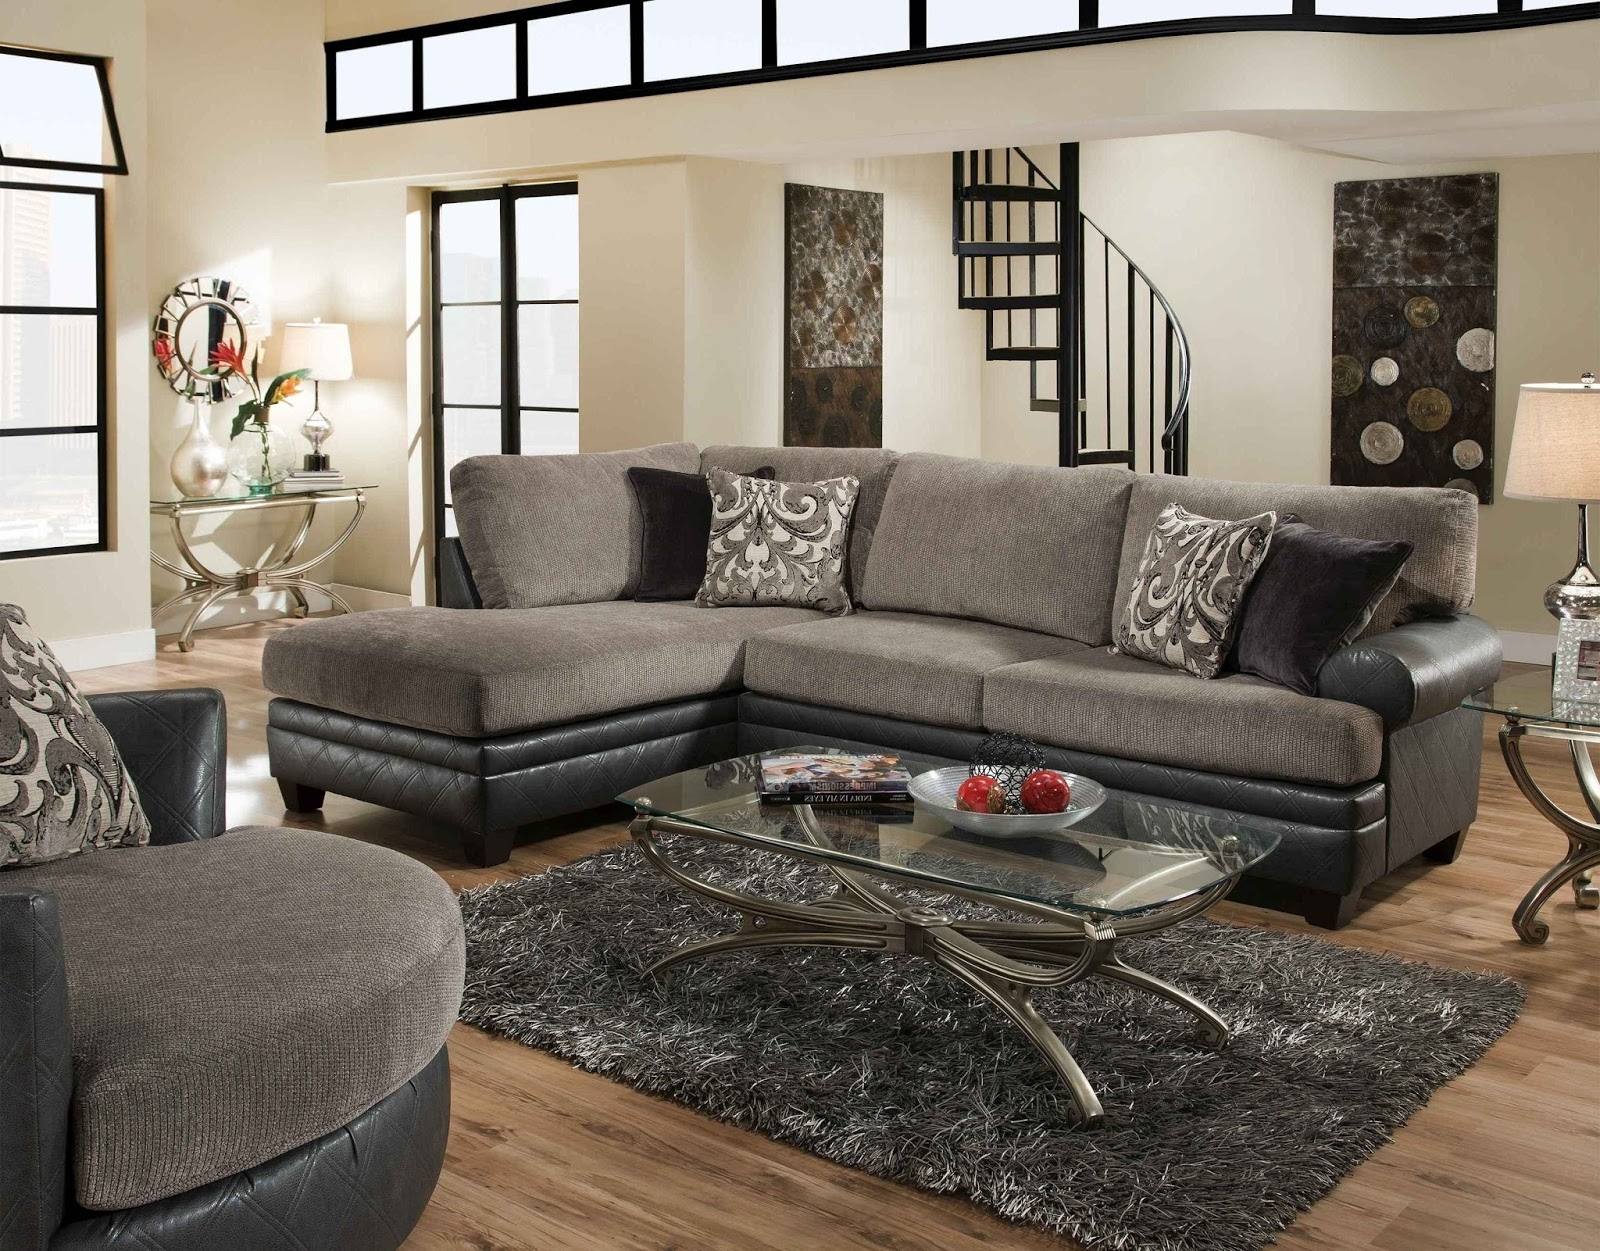 albany industries leather sofa scandinavian murah malaysia 12 inspirations of sectional